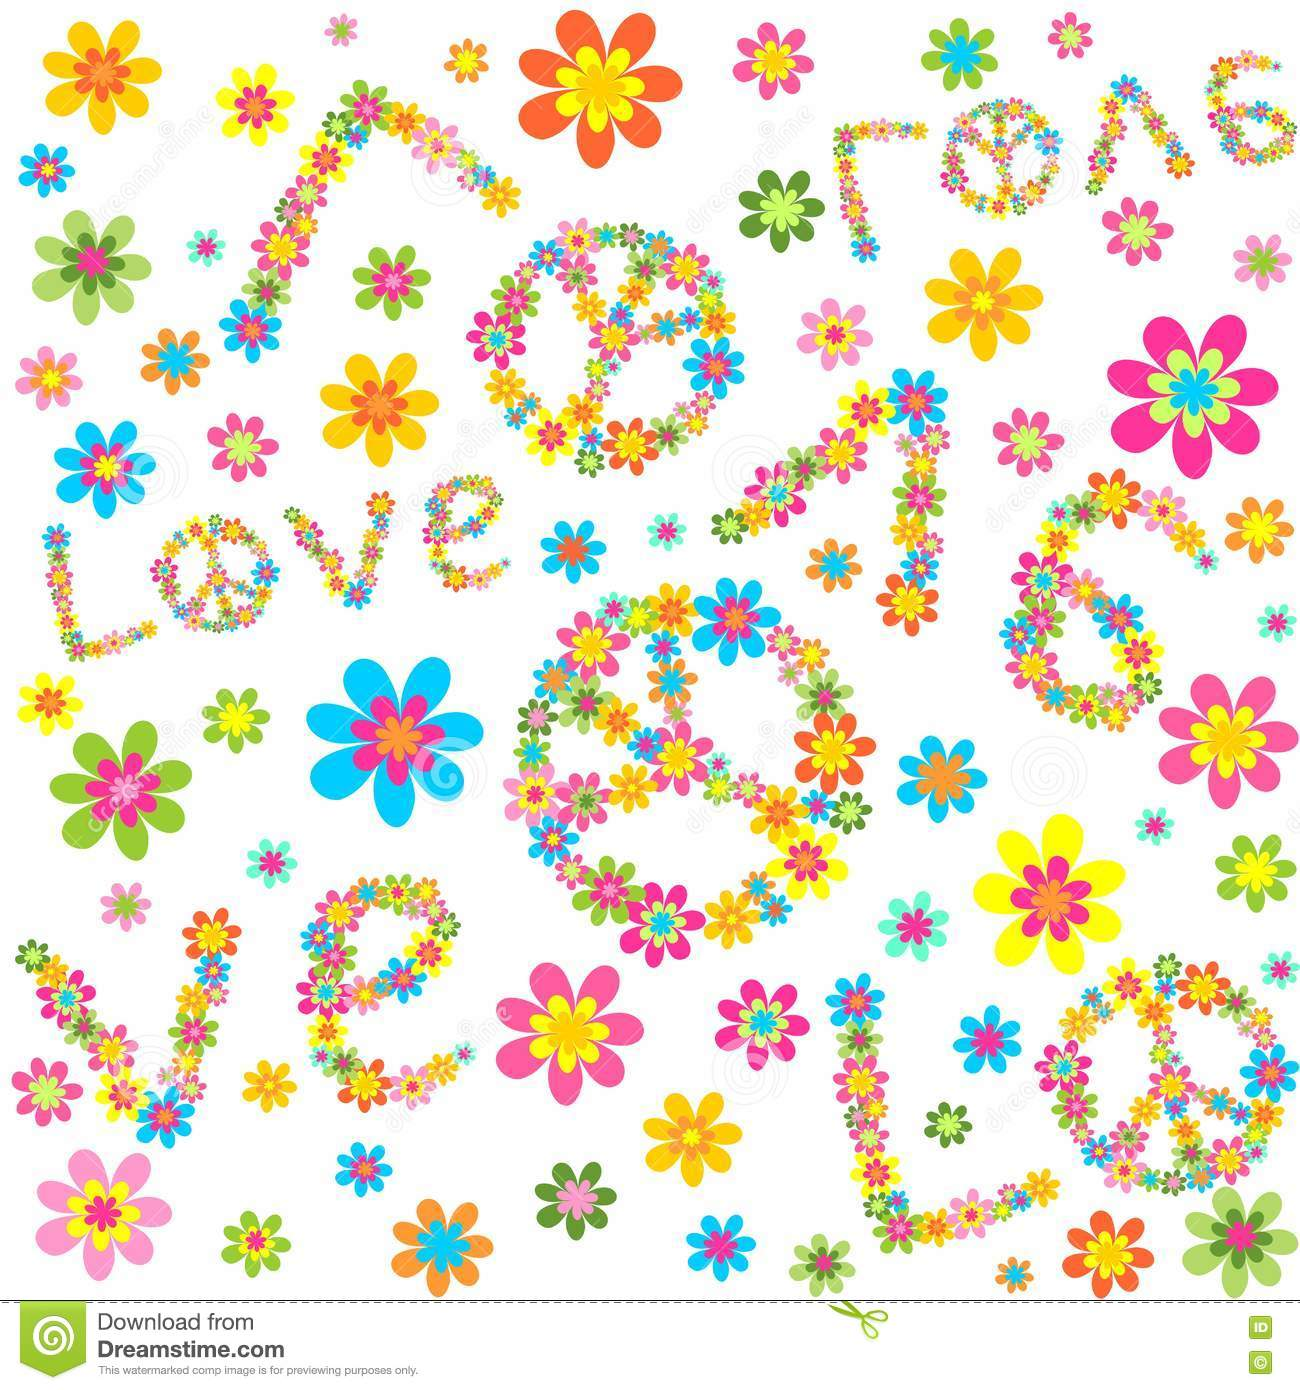 Hippie wallpaper with colorful abstract flowers and love lettering